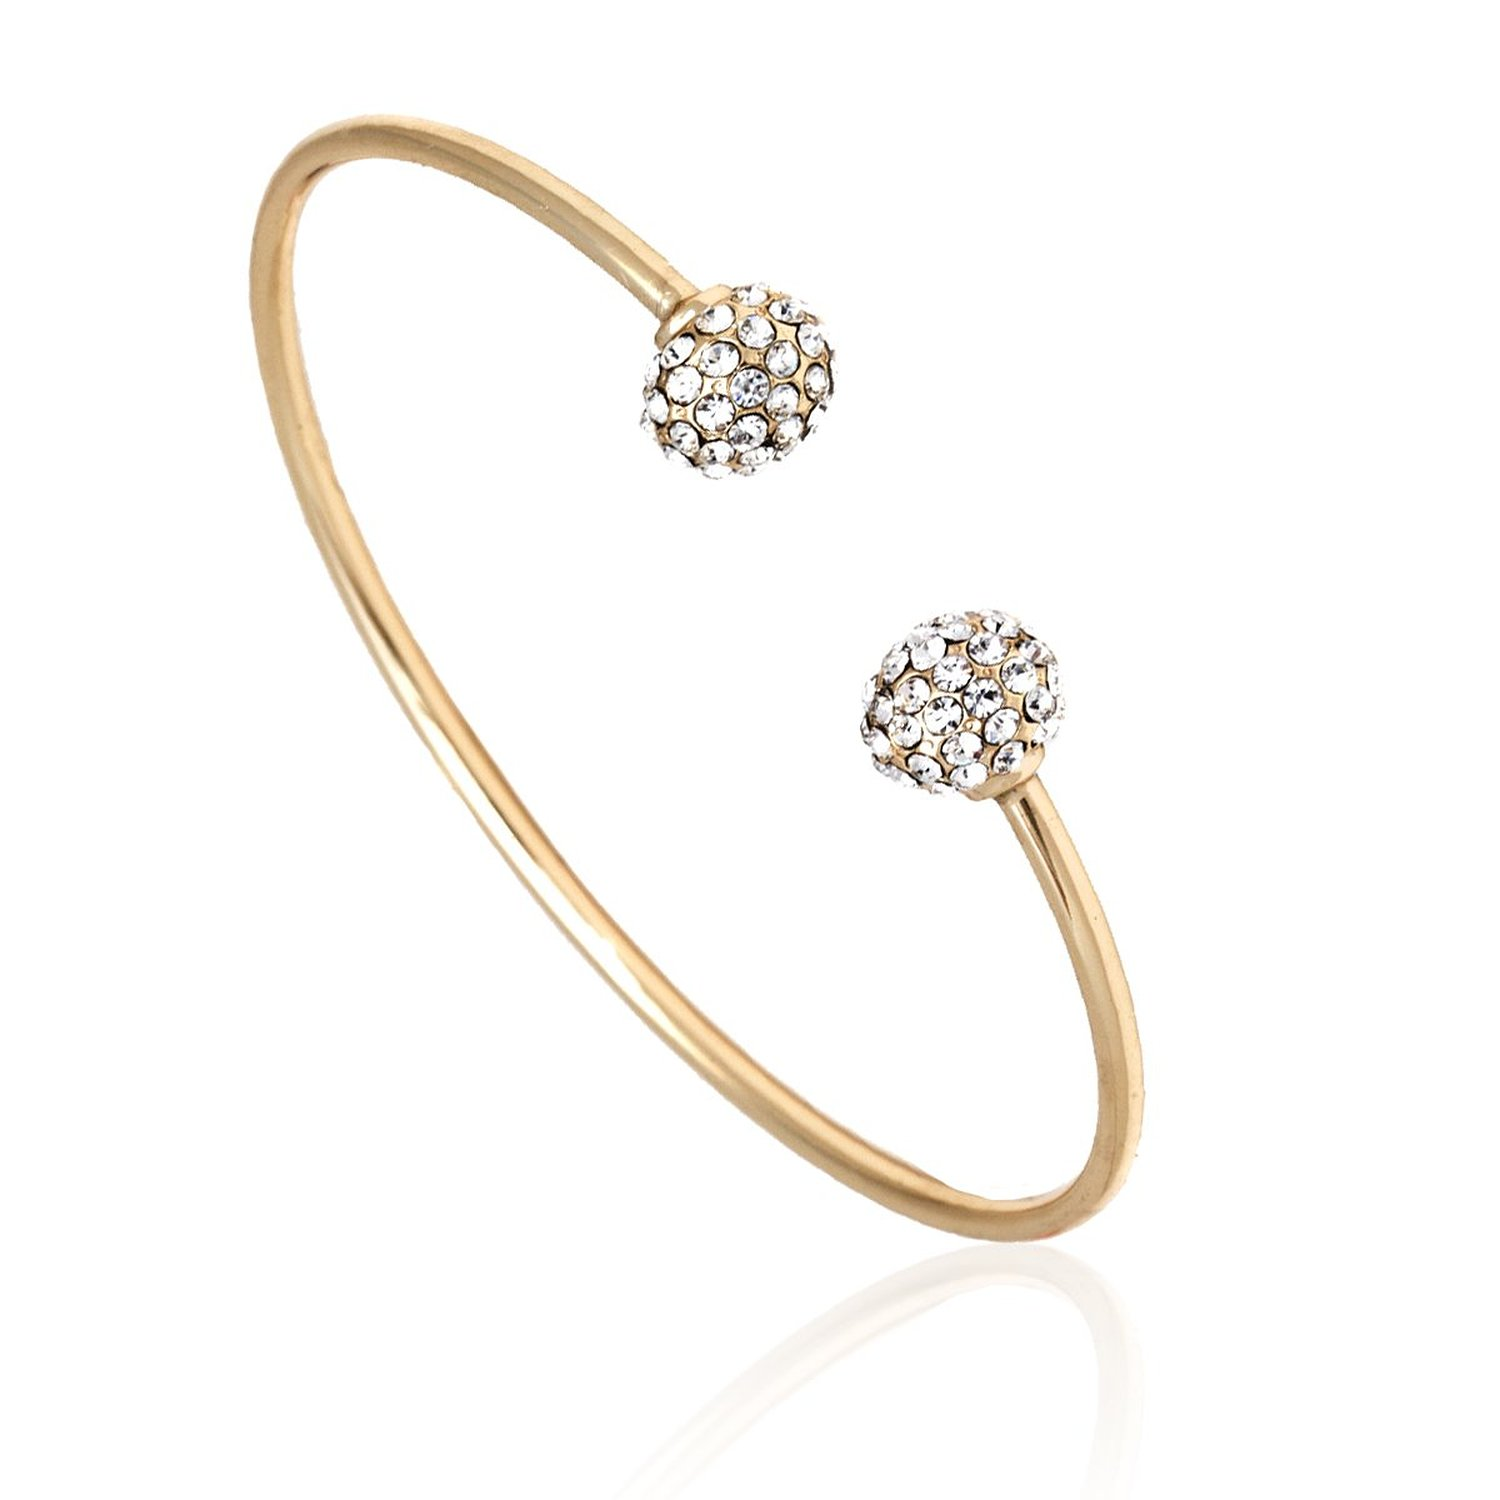 accents with desires gold open cuff thin bangles hammered mjm bracelet products diamond bangle